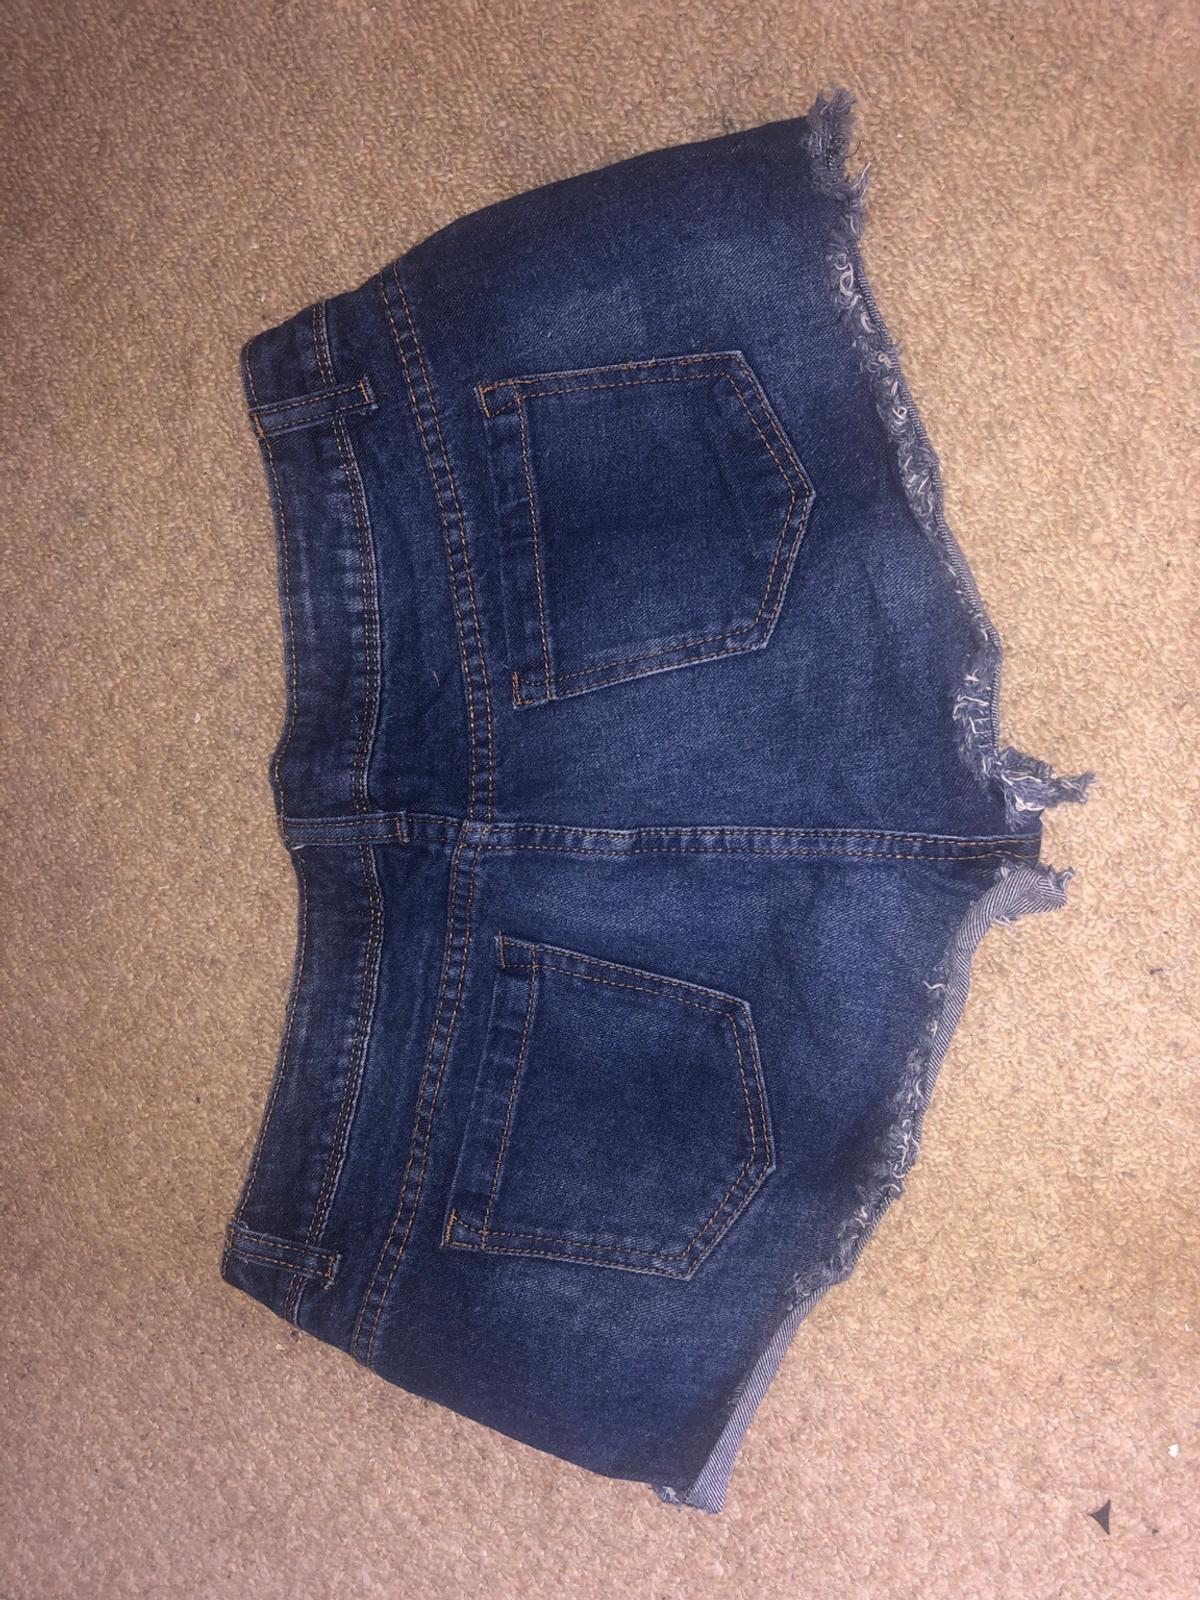 - never worn - 5 pockets - collection from Eastleigh